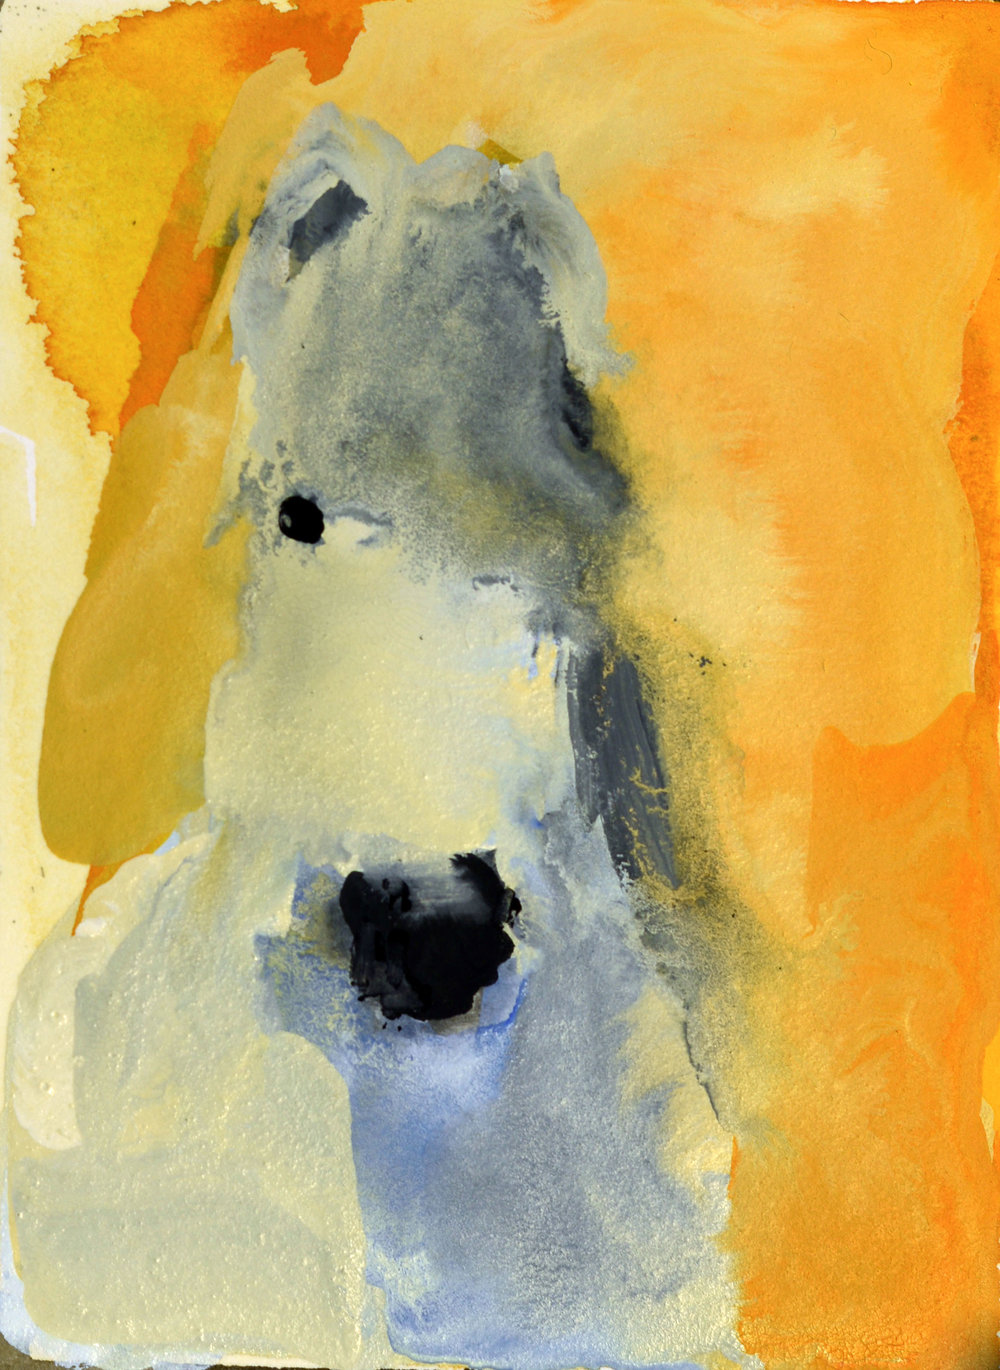 Rebecca Kinkead White Horse (on Orange)_4x3 inset on 11 x 7.5 paper.jpg